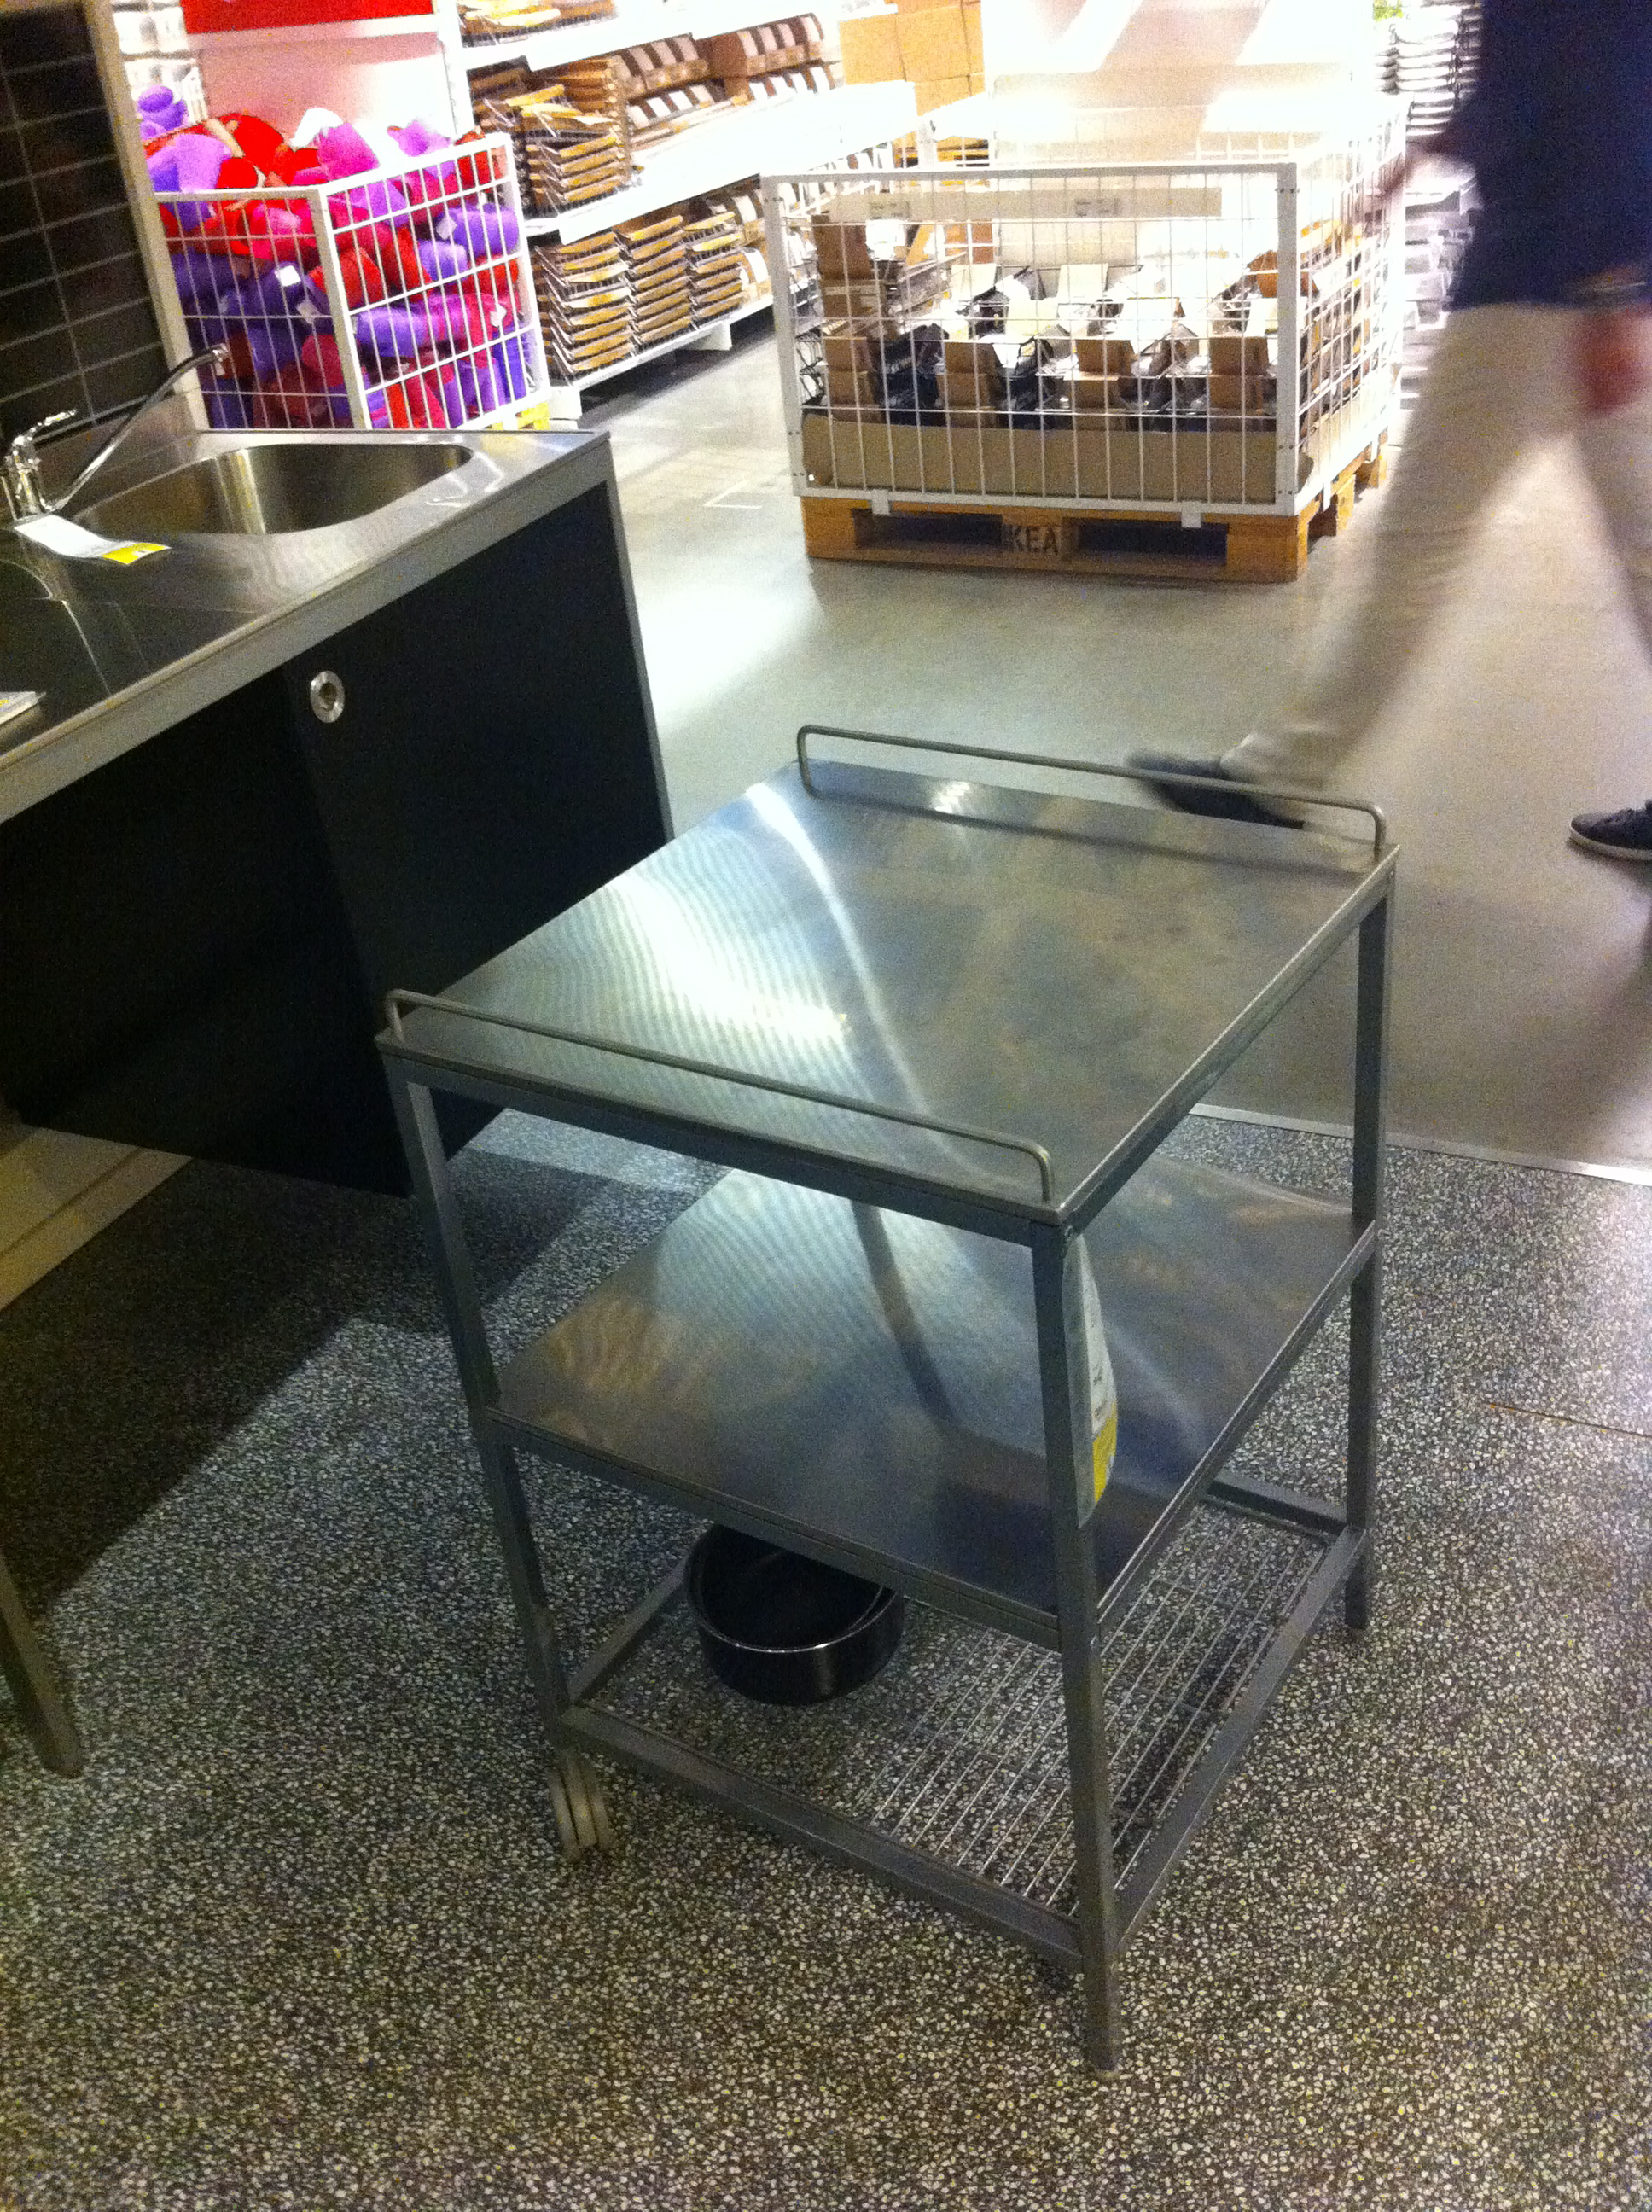 This kitchen range is perfect for a work shop - this will make a great welder table